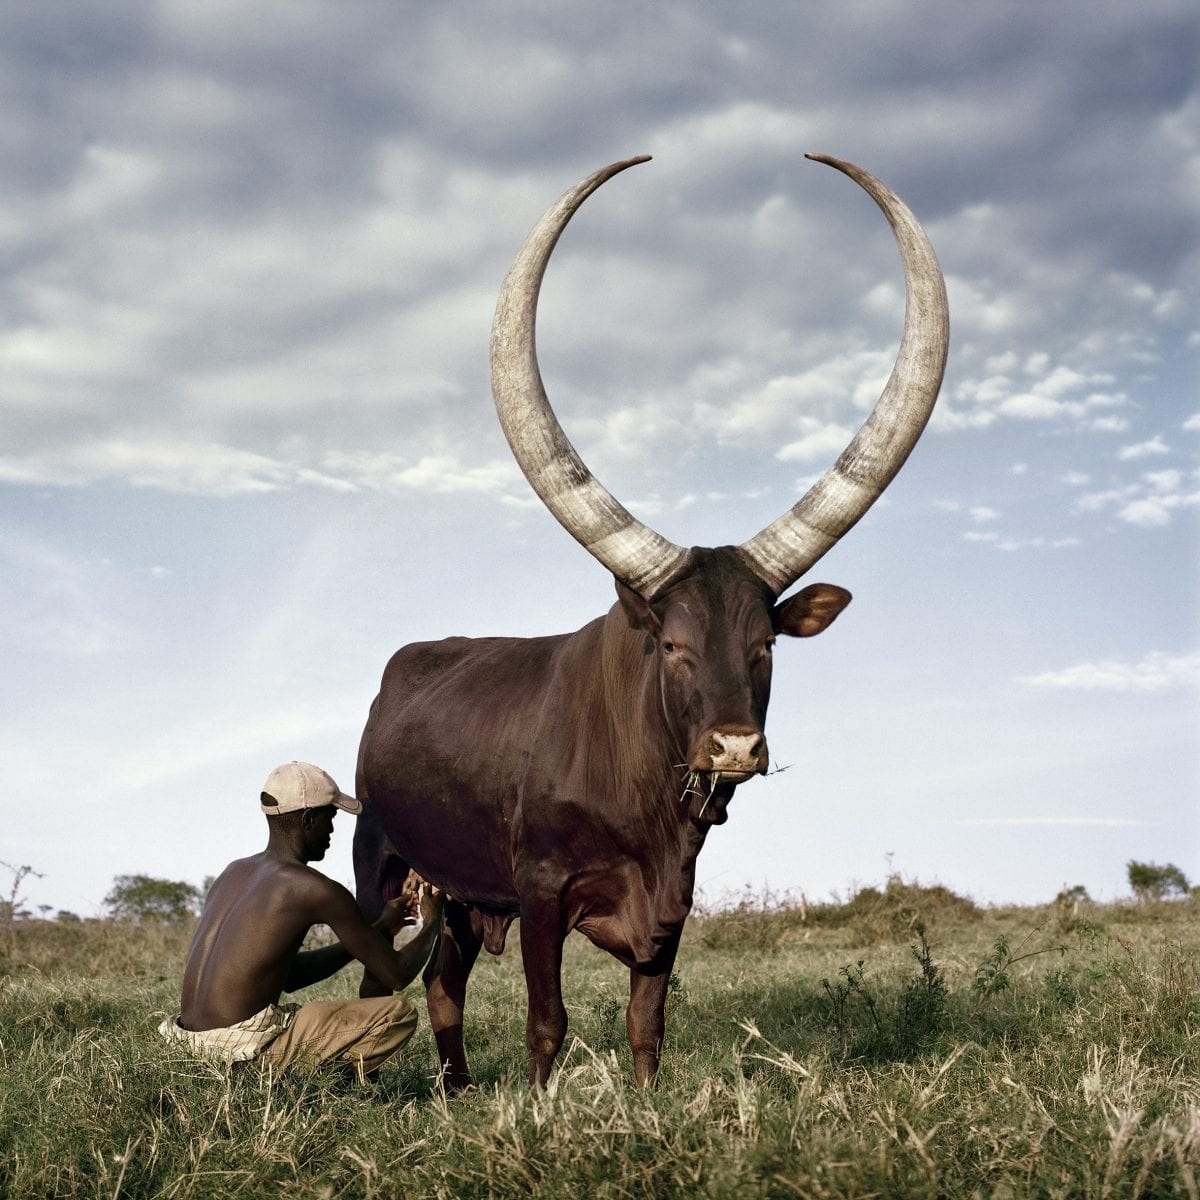 Daniel Naudé Ankole 3. Outside Mbarara, Kiruhura district, Uganda, 2012, 2012. Stevenson